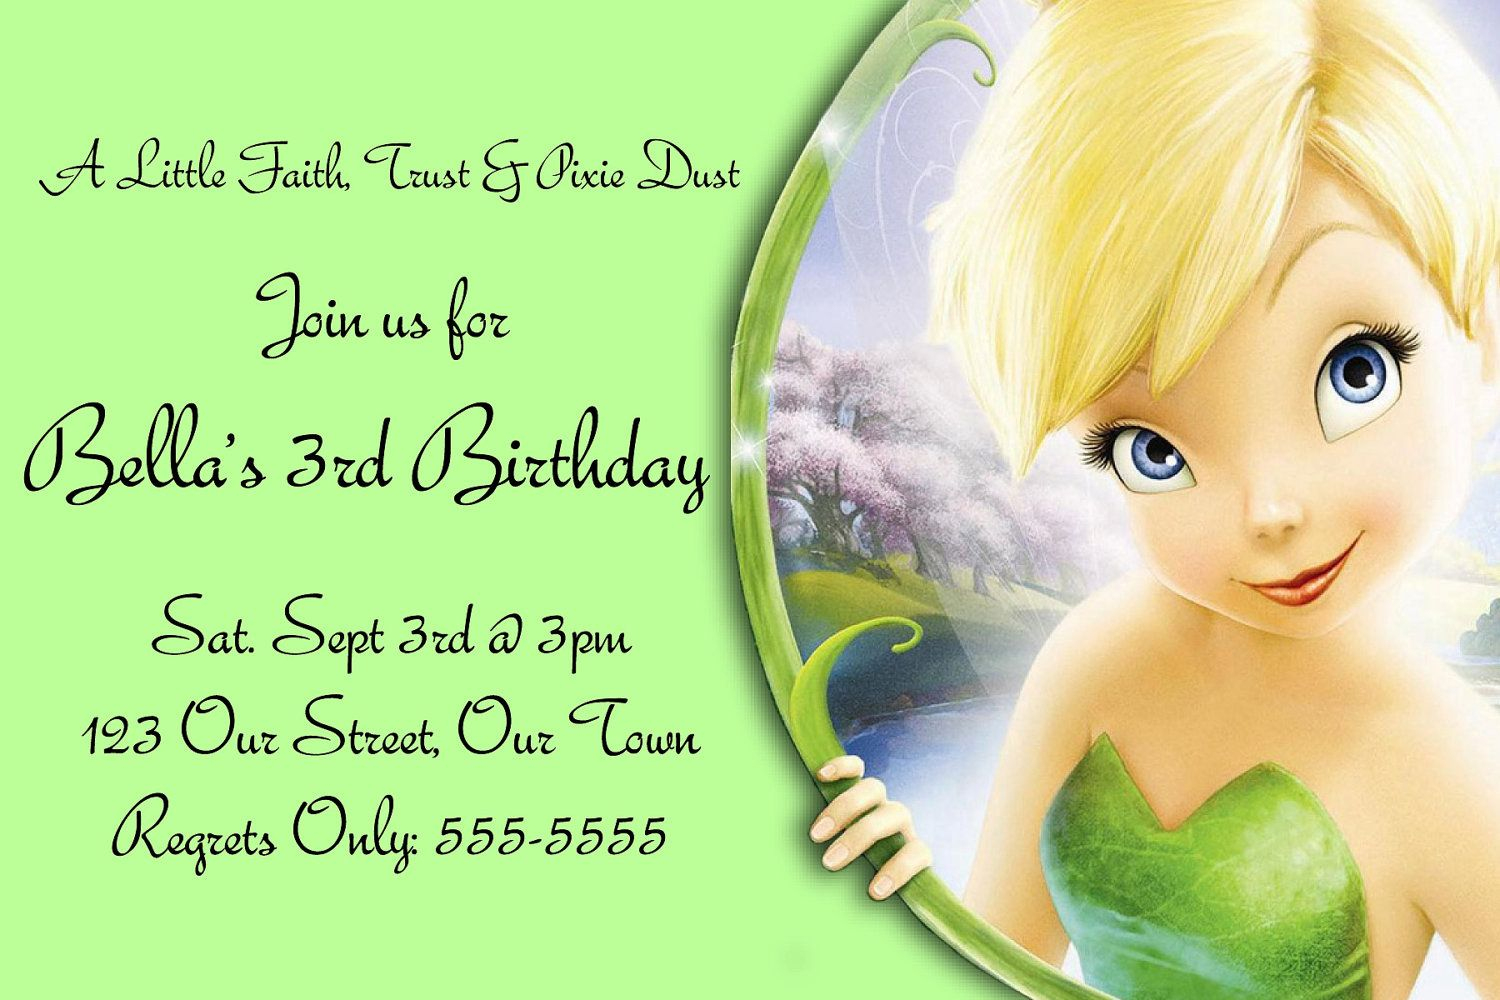 Pindrevio Invitation On Free Printable Birthday Invitation In - Free Tinkerbell Printable Birthday Invitations